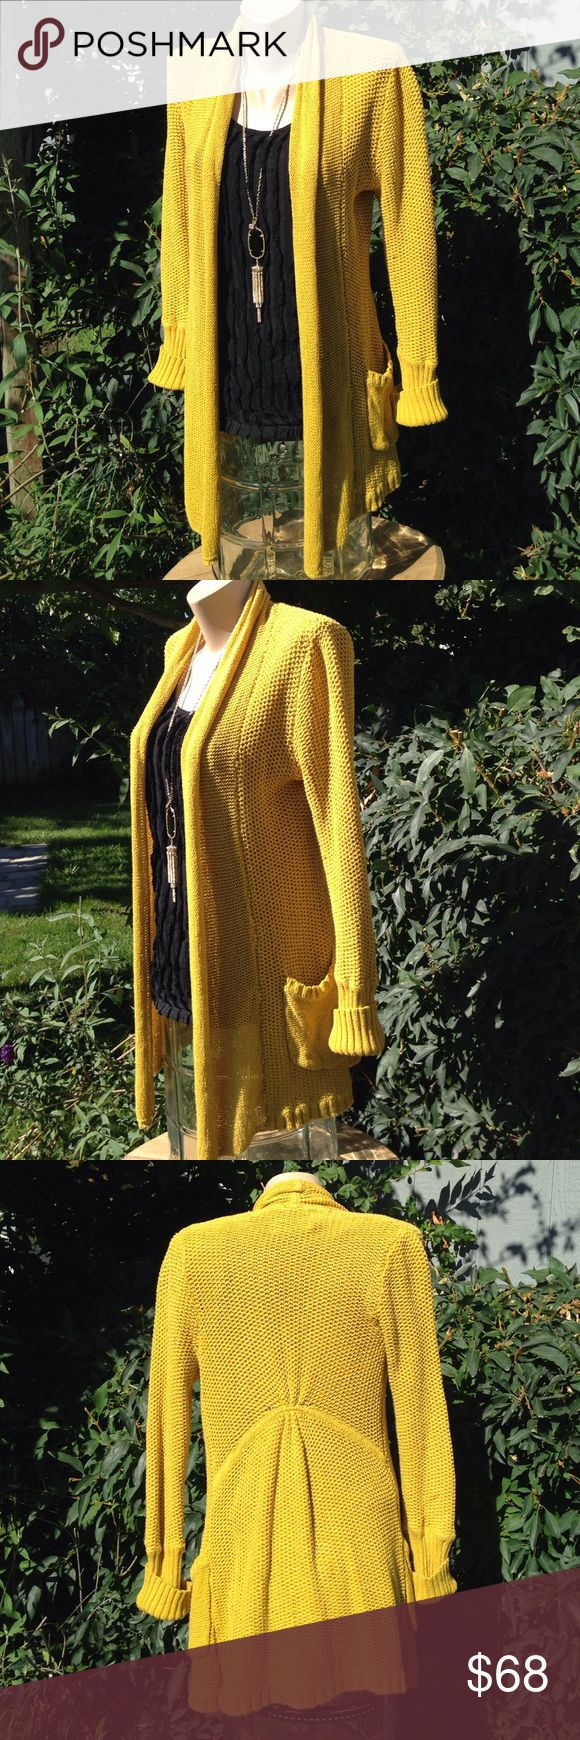 "ANTHROPOLOGIE Guinevere Gold Cardigan Small/Medium ANTHROPOLOGIE Guinevere Gold Cardigan Medium. 84% cotton, 16% linen. Very long length looks great with leggings & riding boots for fall! 34"" length on back, 31"" length front. Fits small. SAVE WHEN YOU BUNDLE!!! Anthropologie Sweaters Cardigans"